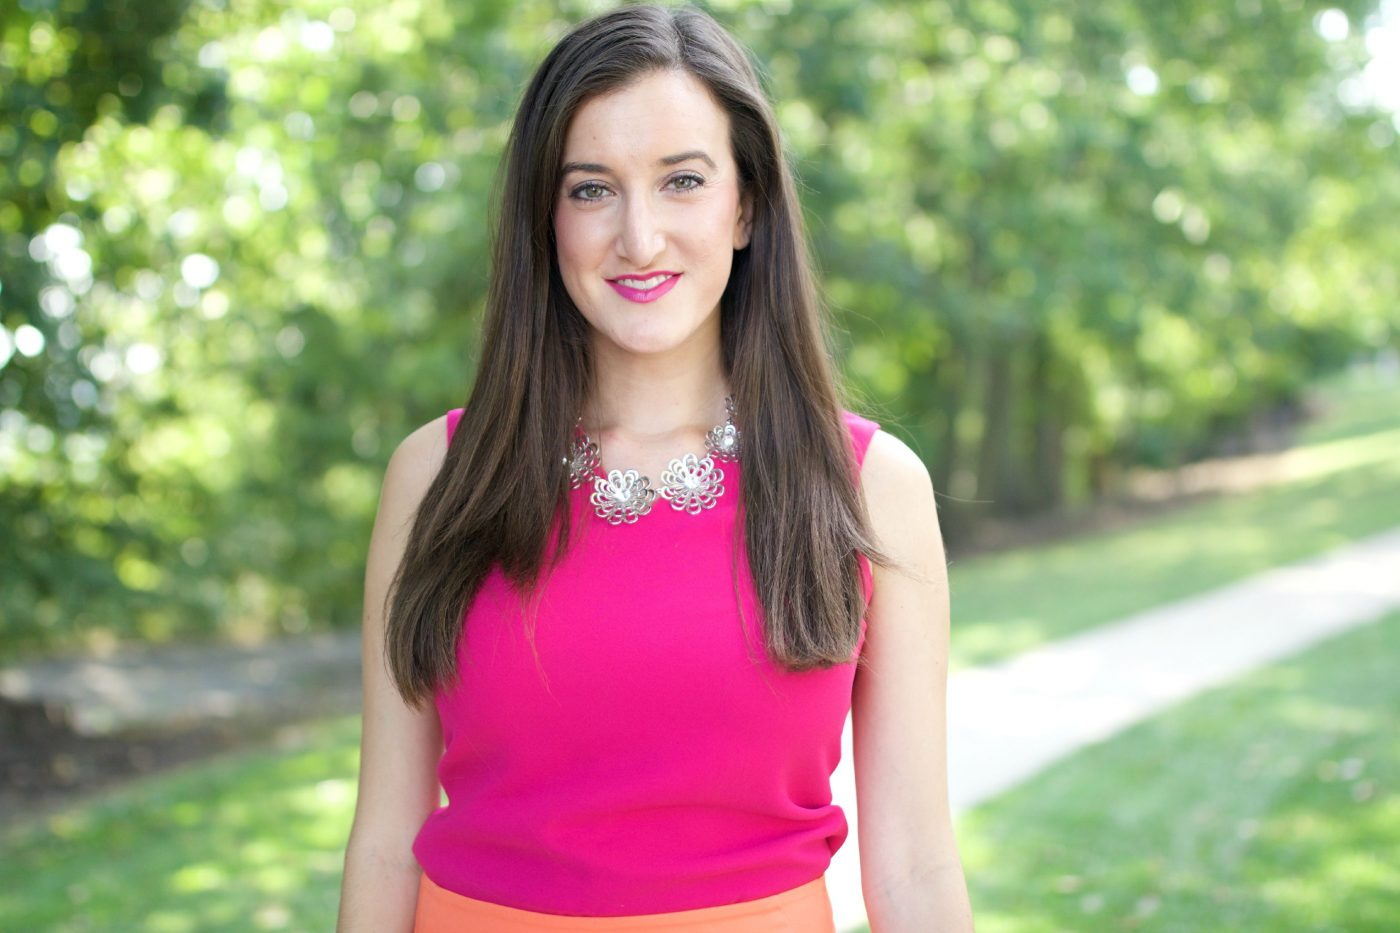 Pink Top with Kate Spade Necklace